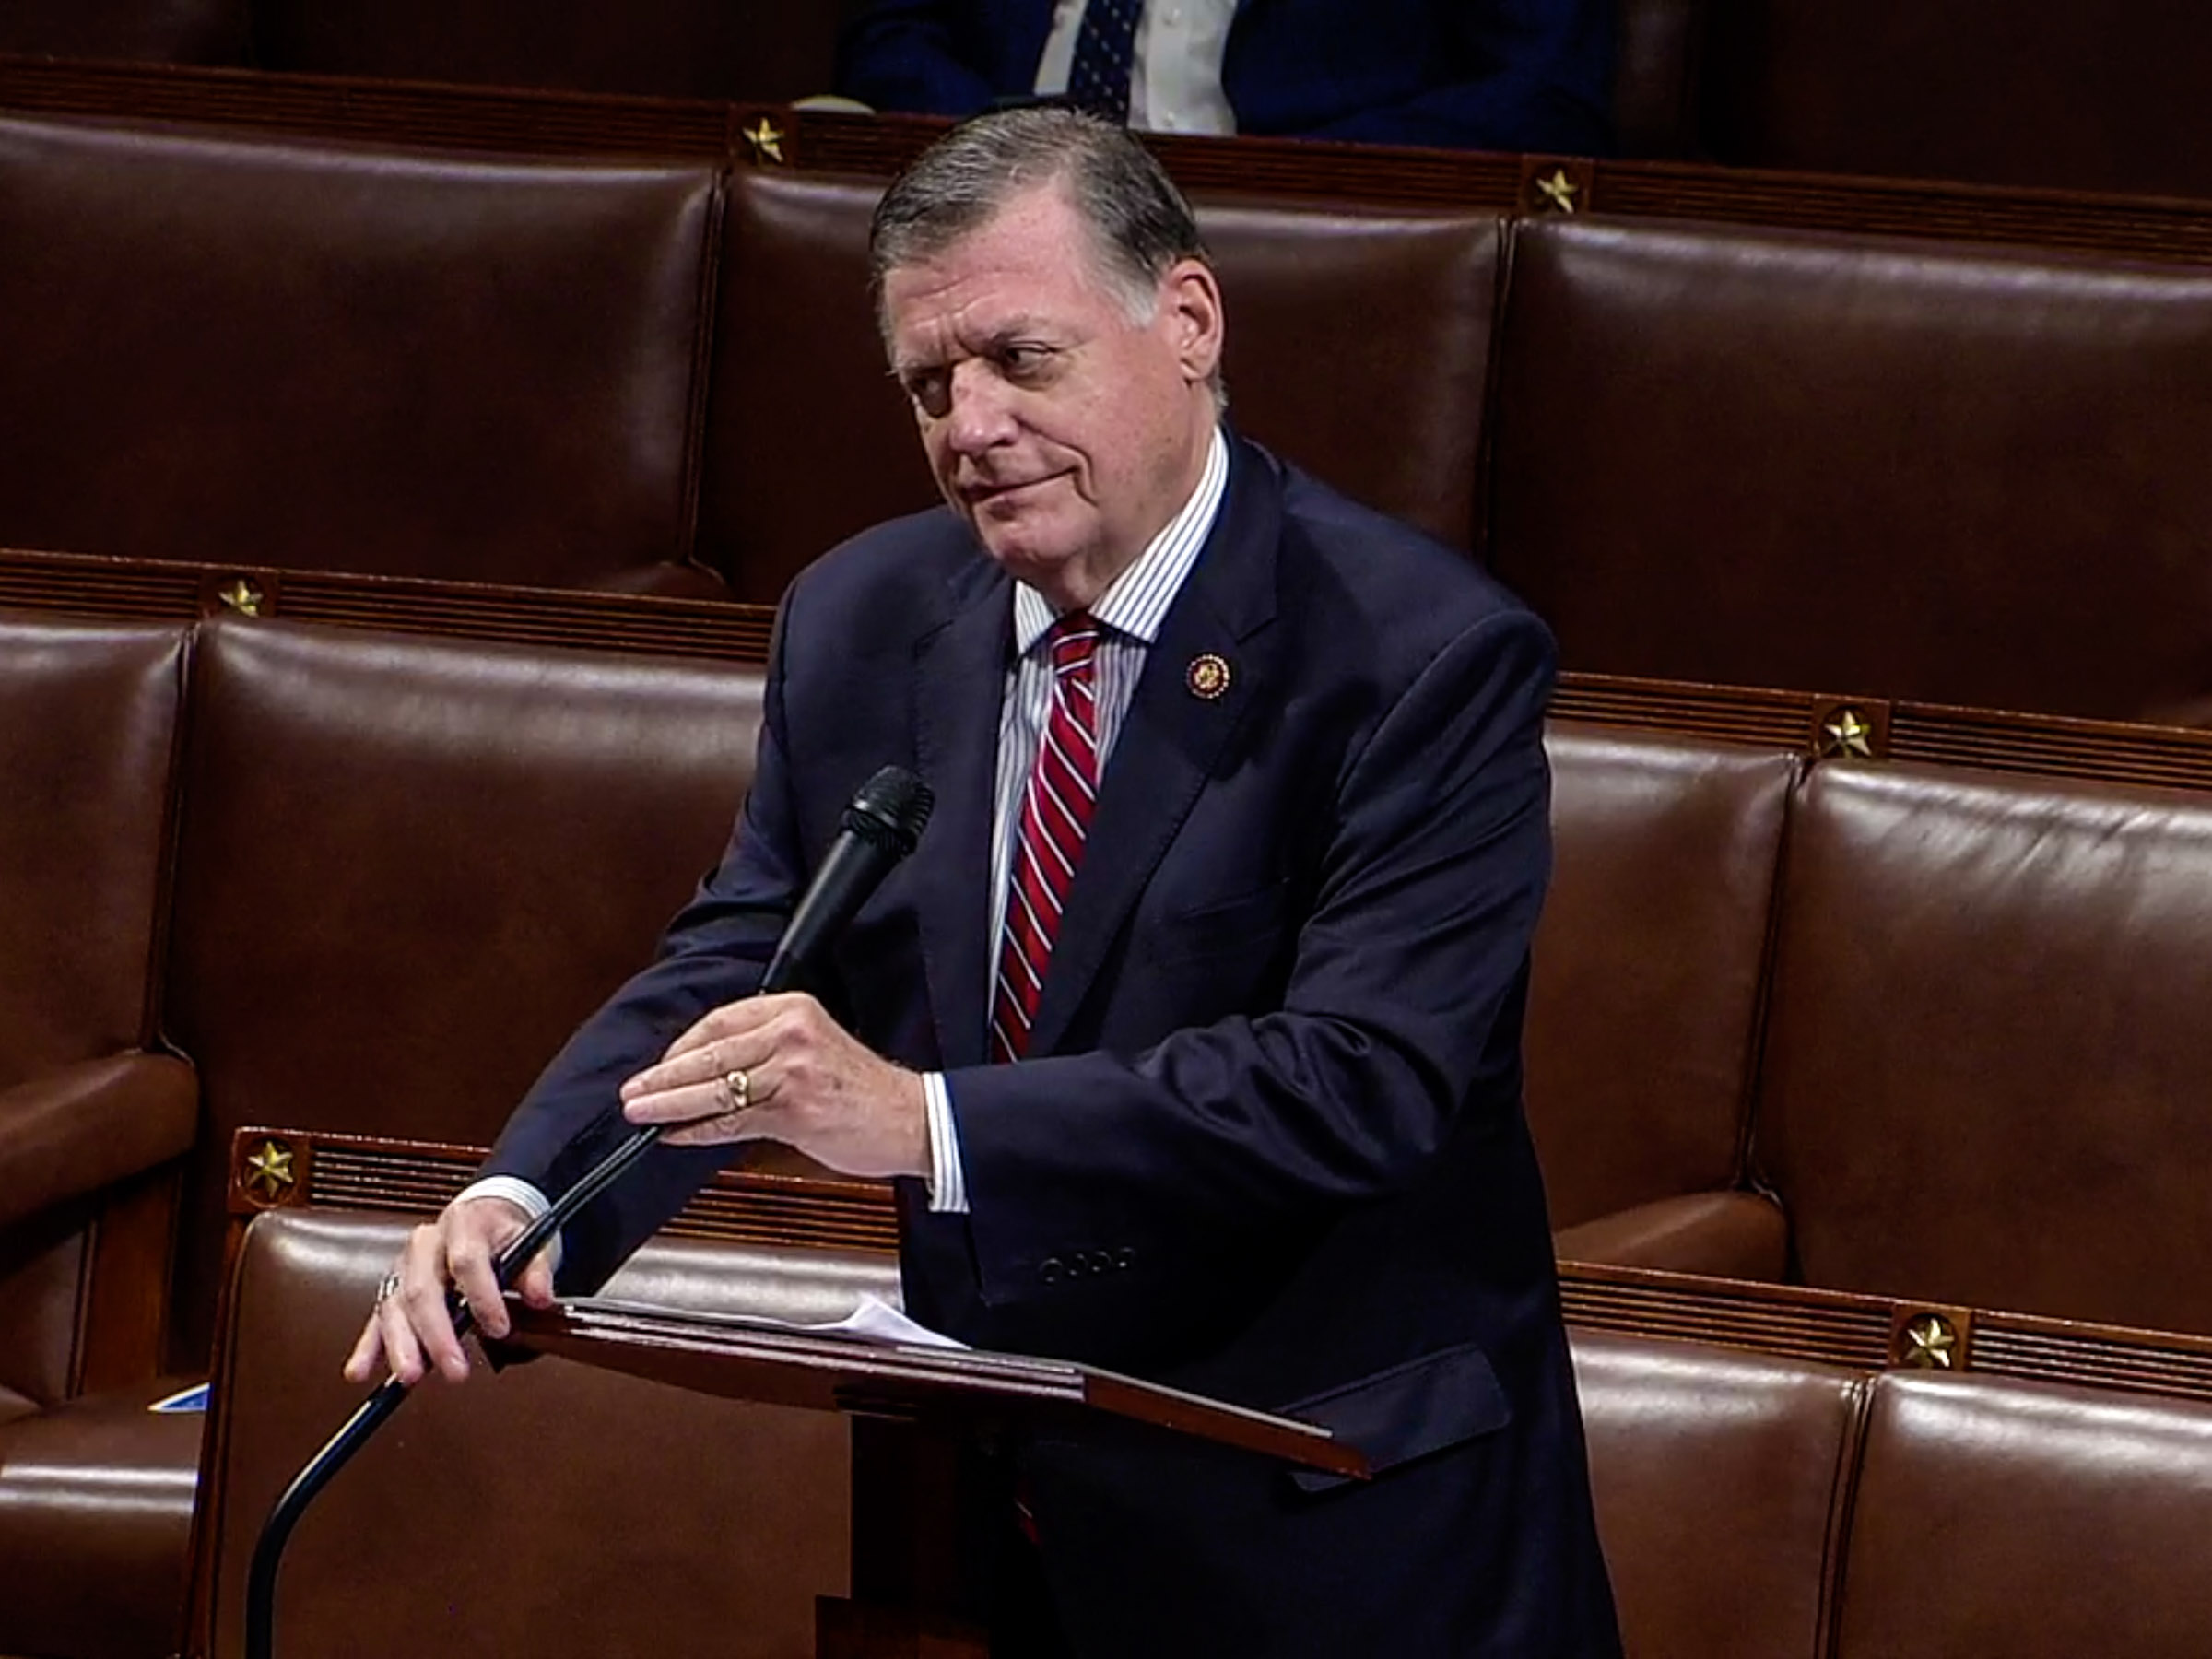 Rep. Tom Cole: The People's House can show up